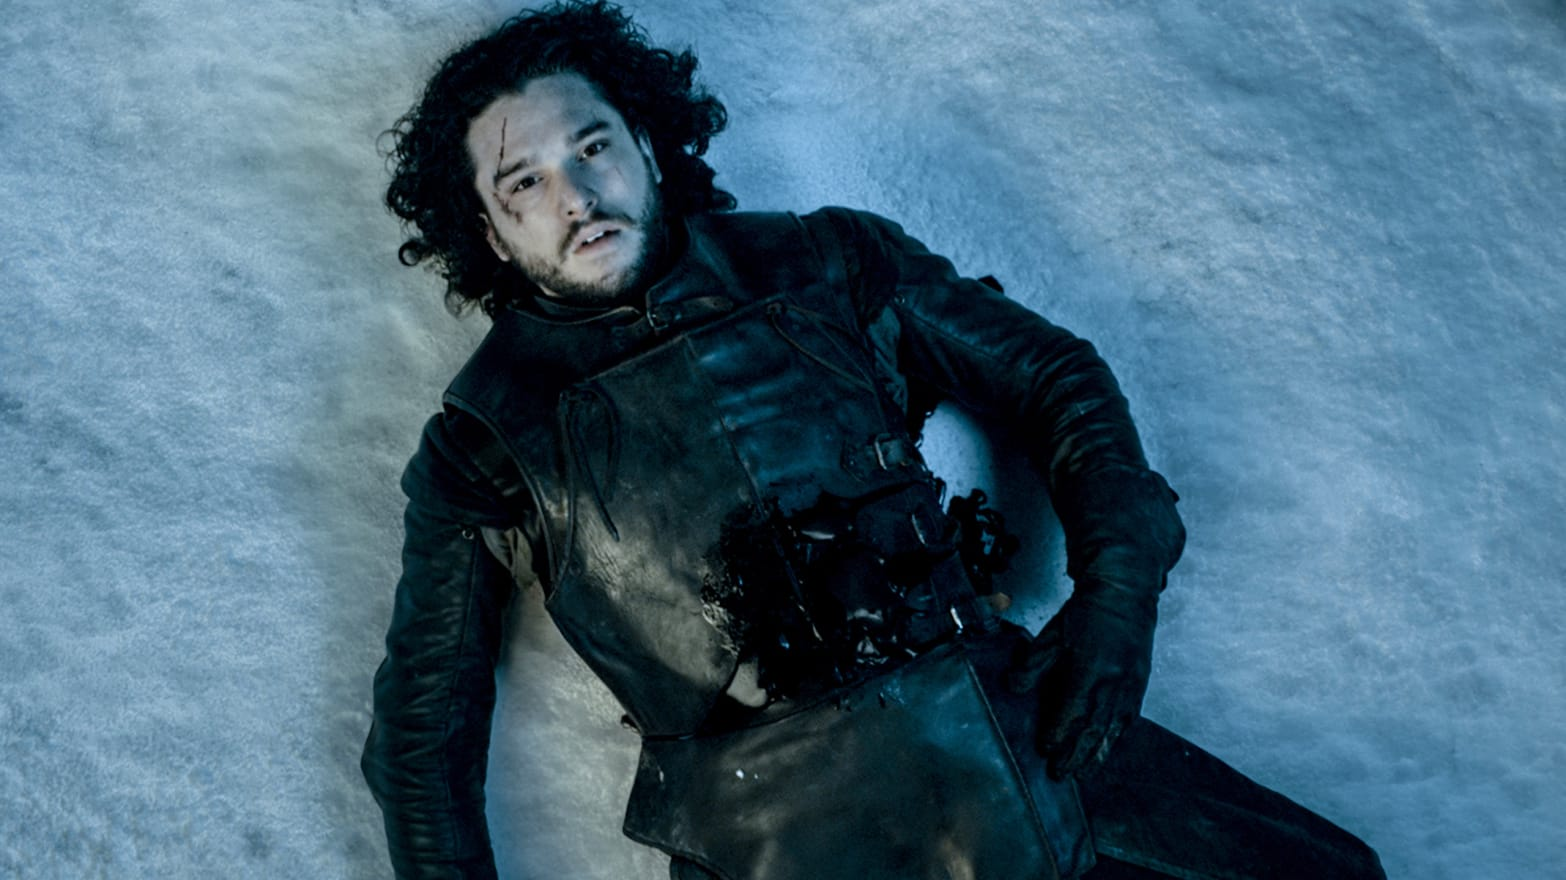 Game of Thrones' Superfan Obama Is Very Upset About Jon Snow's Death